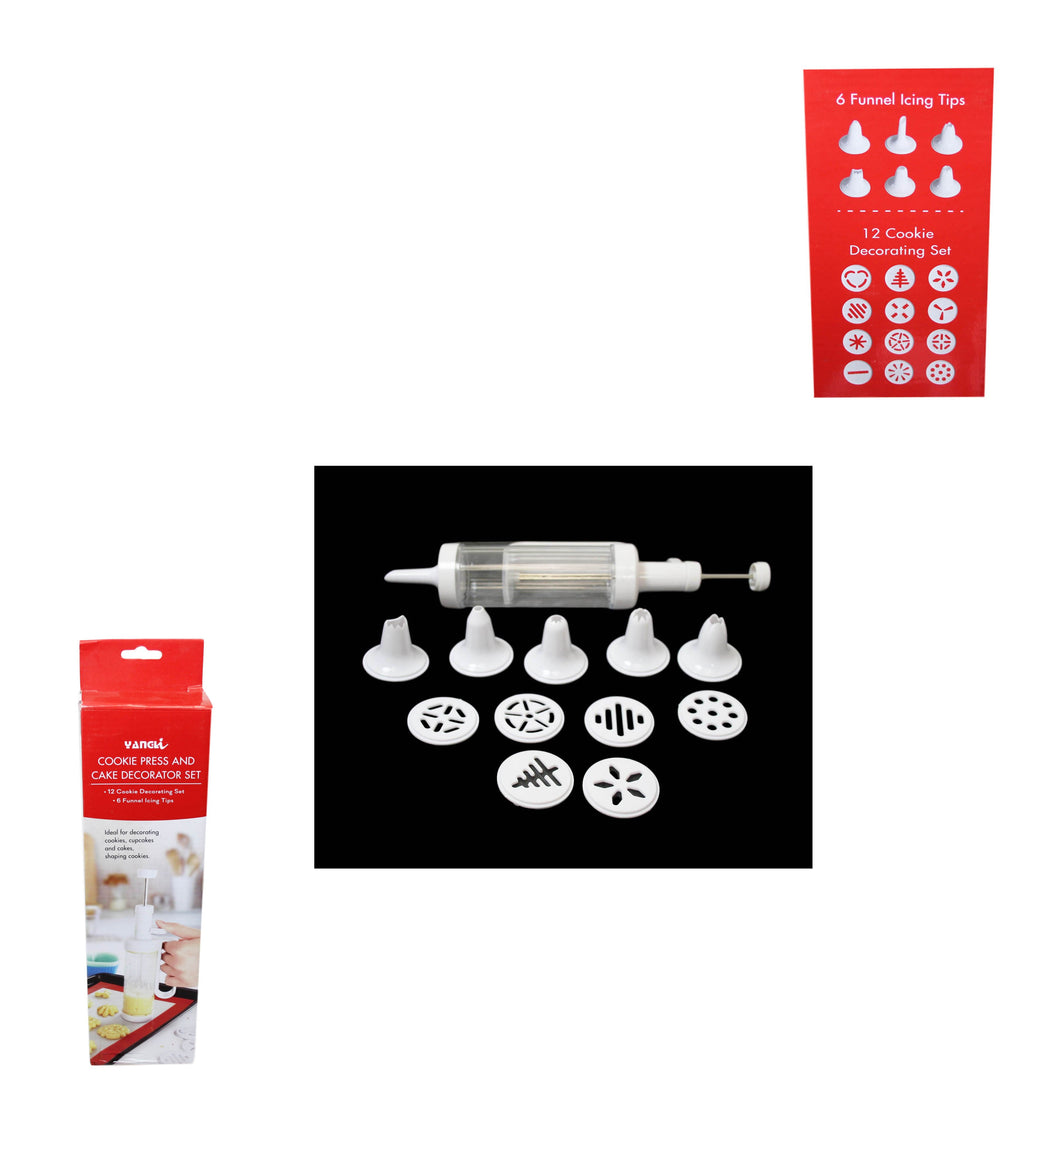 Cookie Press and Cake Decorator Set, 12 Cookie Decor Set, 6 Icing Funnels 4160 (Parcel Rate)